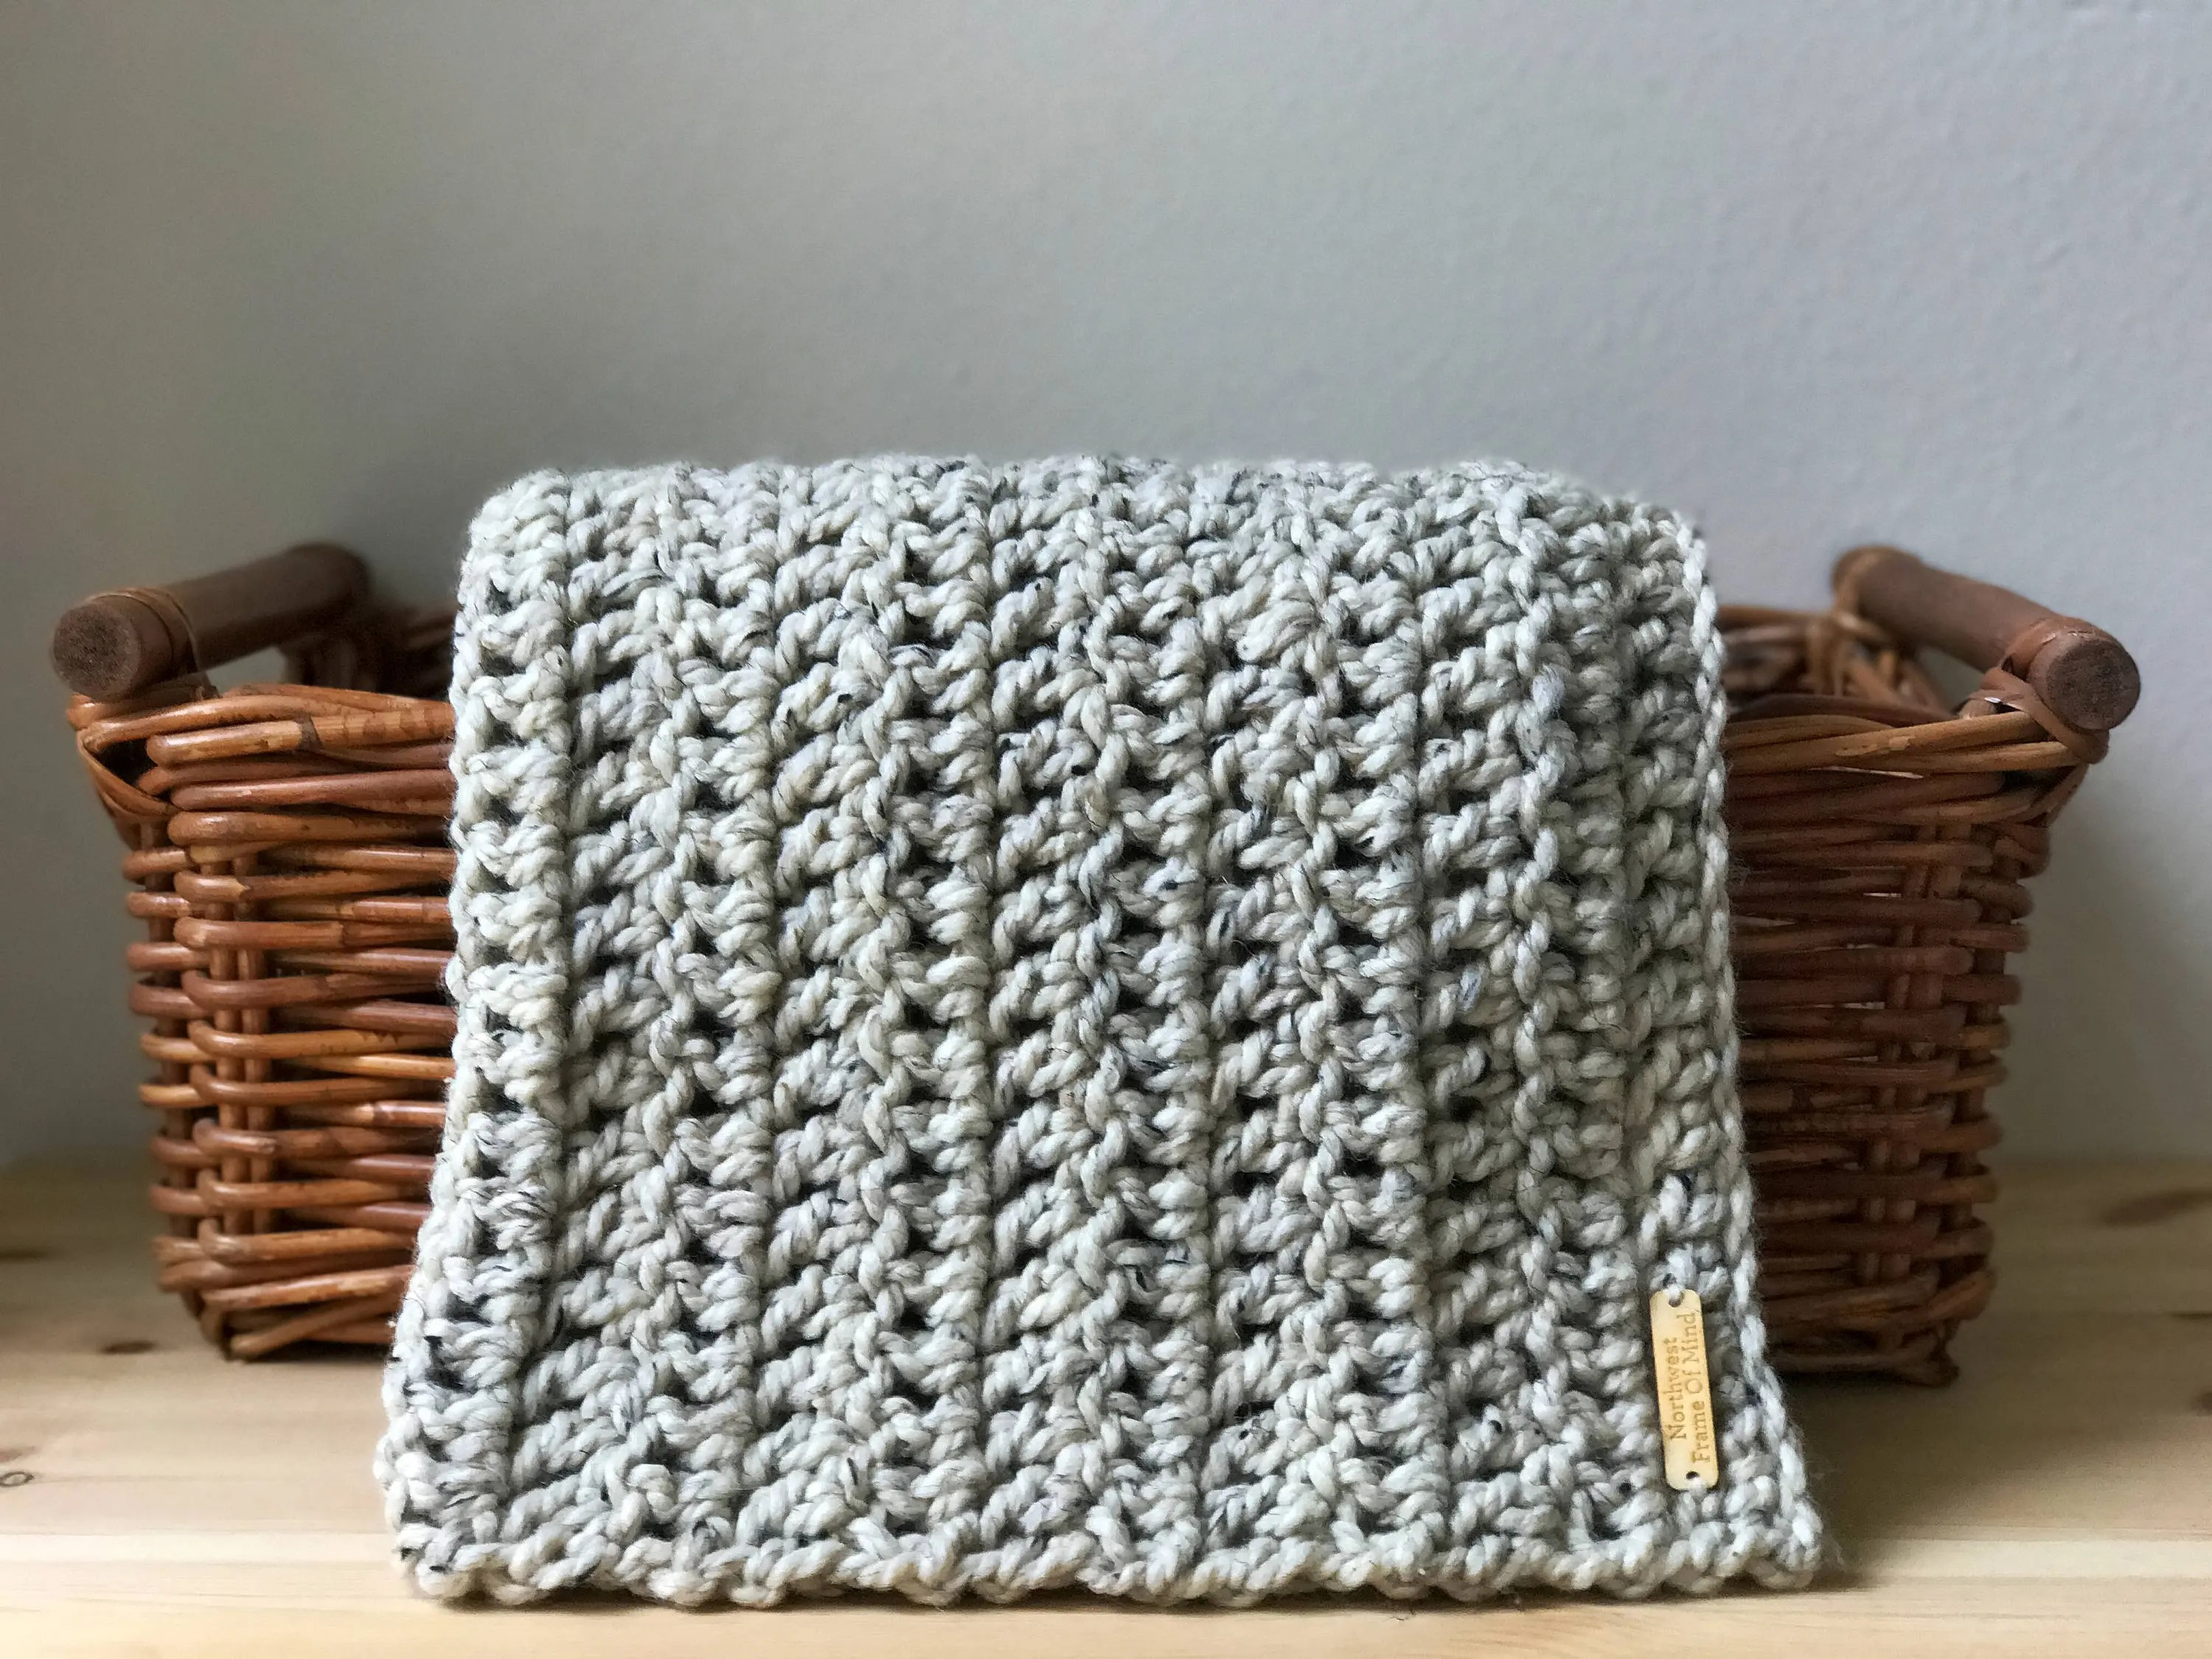 30 second chair stand results racing oatmeal crochet throw blanket